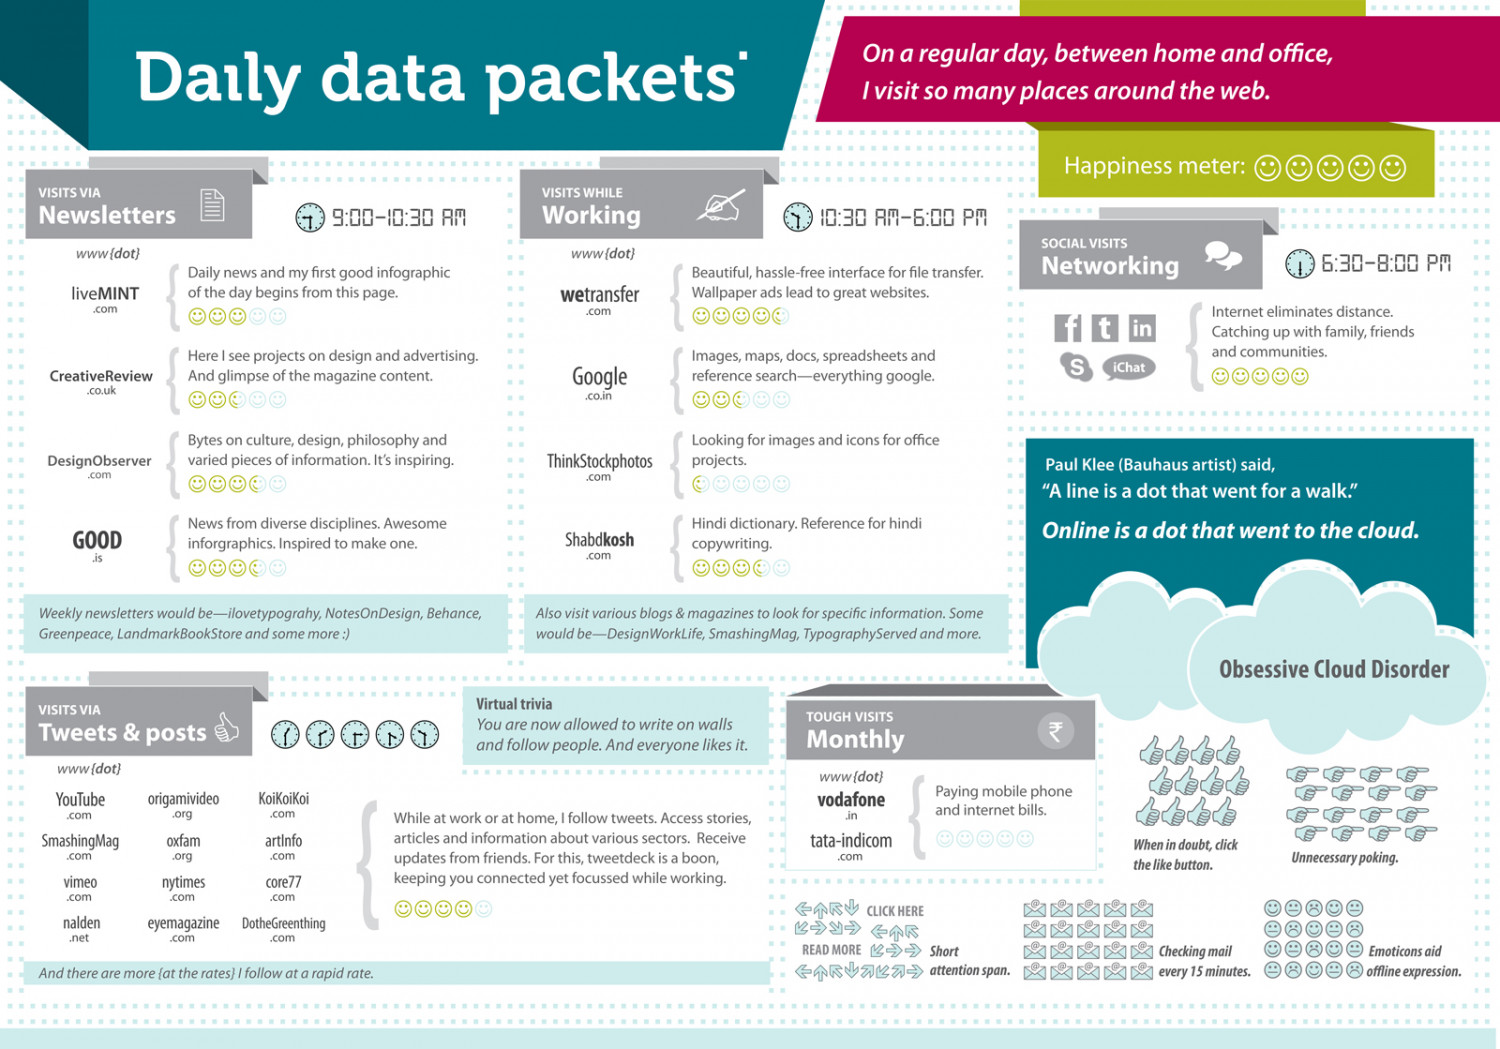 Daily Data Packets Infographic